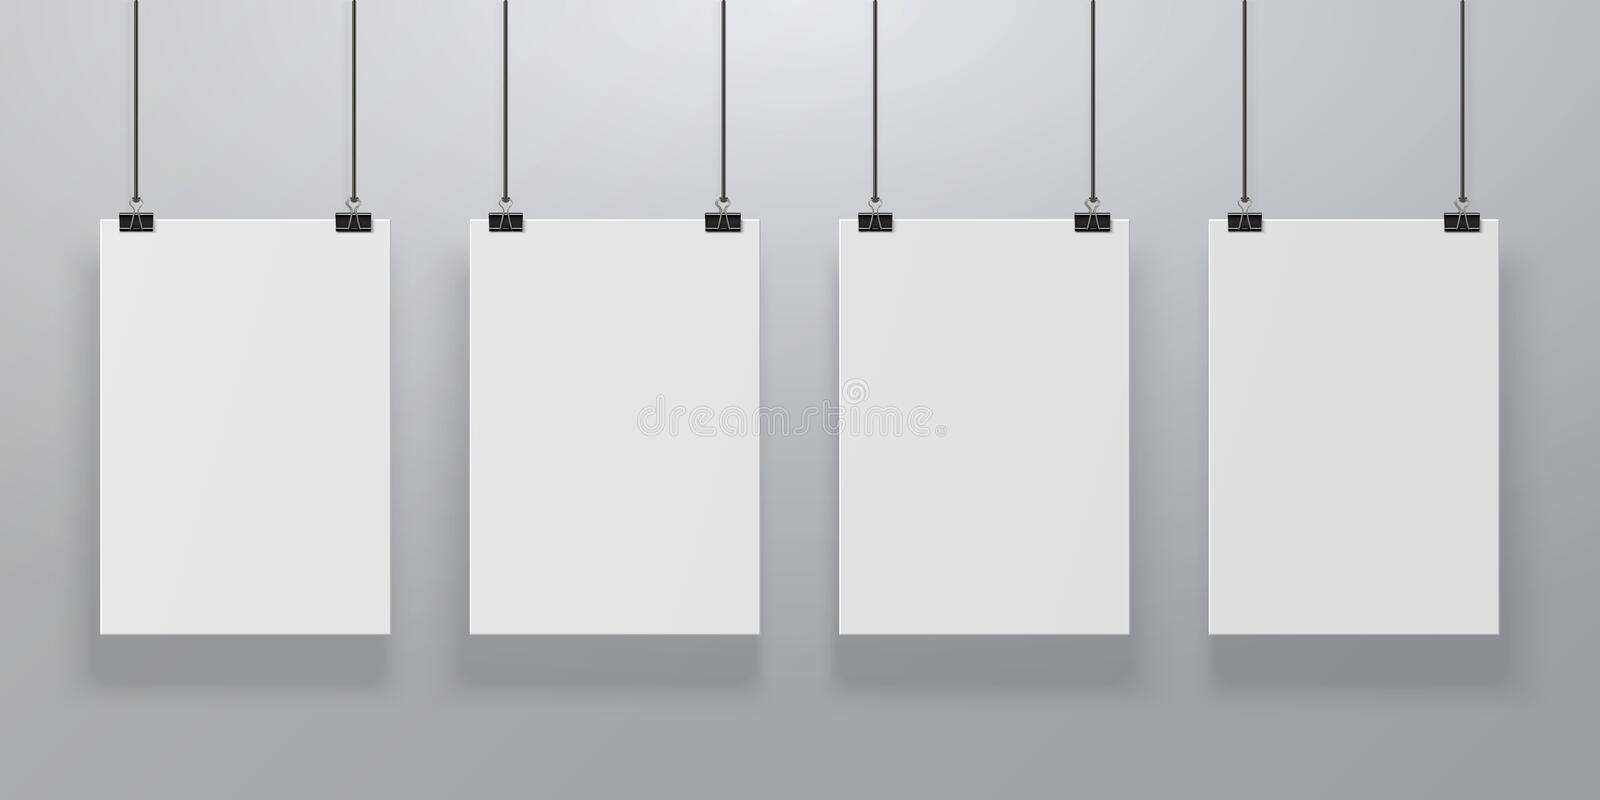 Realistic poster mockup. Blank paper hanging on binders at the wall, empty A4 paper poster clipped on ropes. Advertising vector illustration